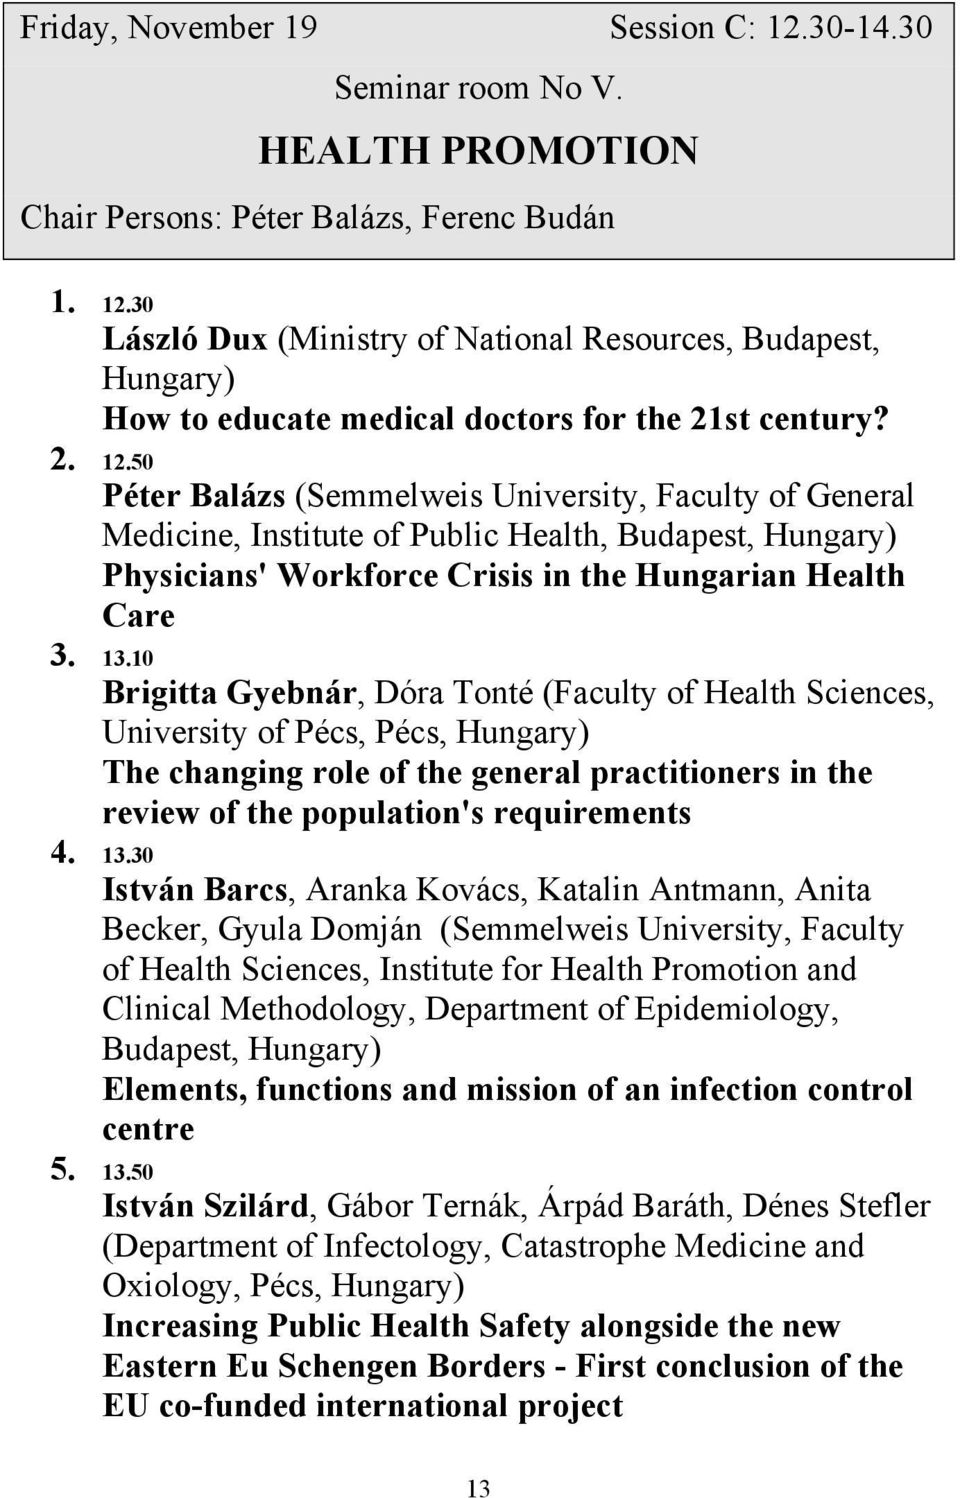 10 Brigitta Gyebnár, Dóra Tonté (Faculty of Health Sciences, University of Pécs, Pécs, Hungary) The changing role of the general practitioners in the review of the population's requirements 4. 13.